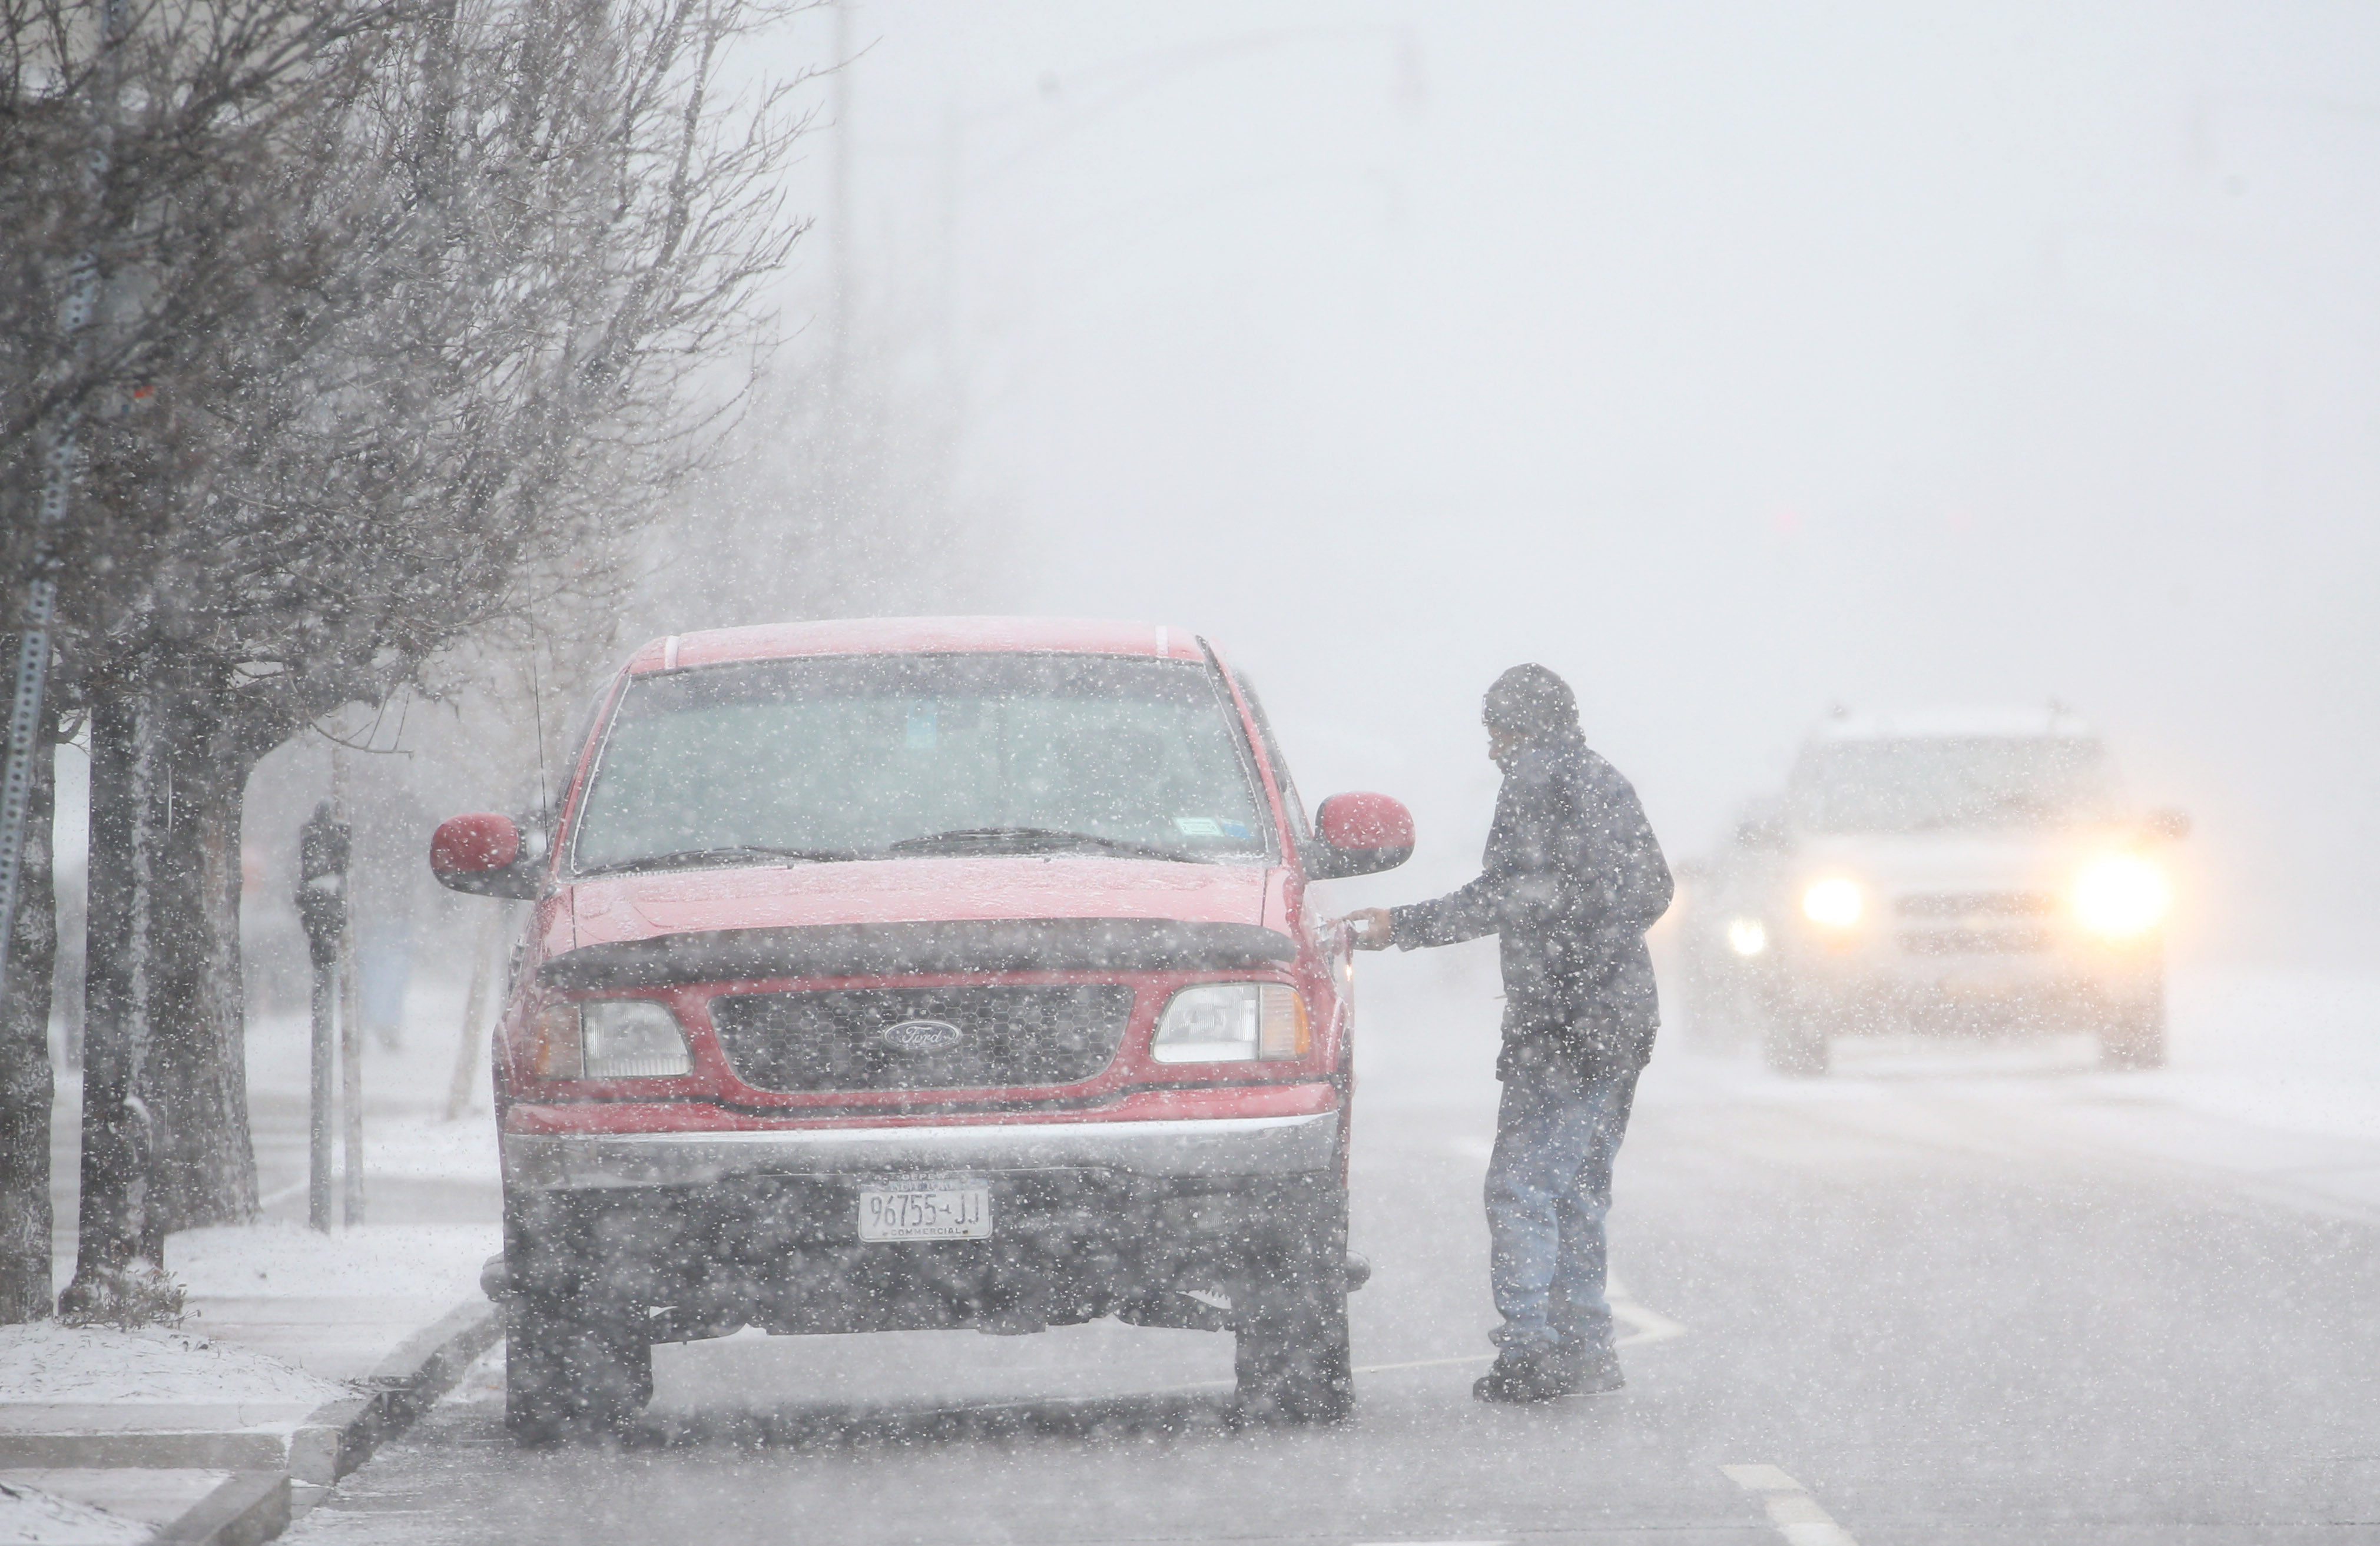 Snow accumulations of 7 to 14 inches are possible for Buffalo as well as Niagara, Orleans, Genesee, Wyoming, Chautauqua, Cattaraugus and Allegany counties, according the National Weather Service. (Sharon Cantillon/Buffalo News)